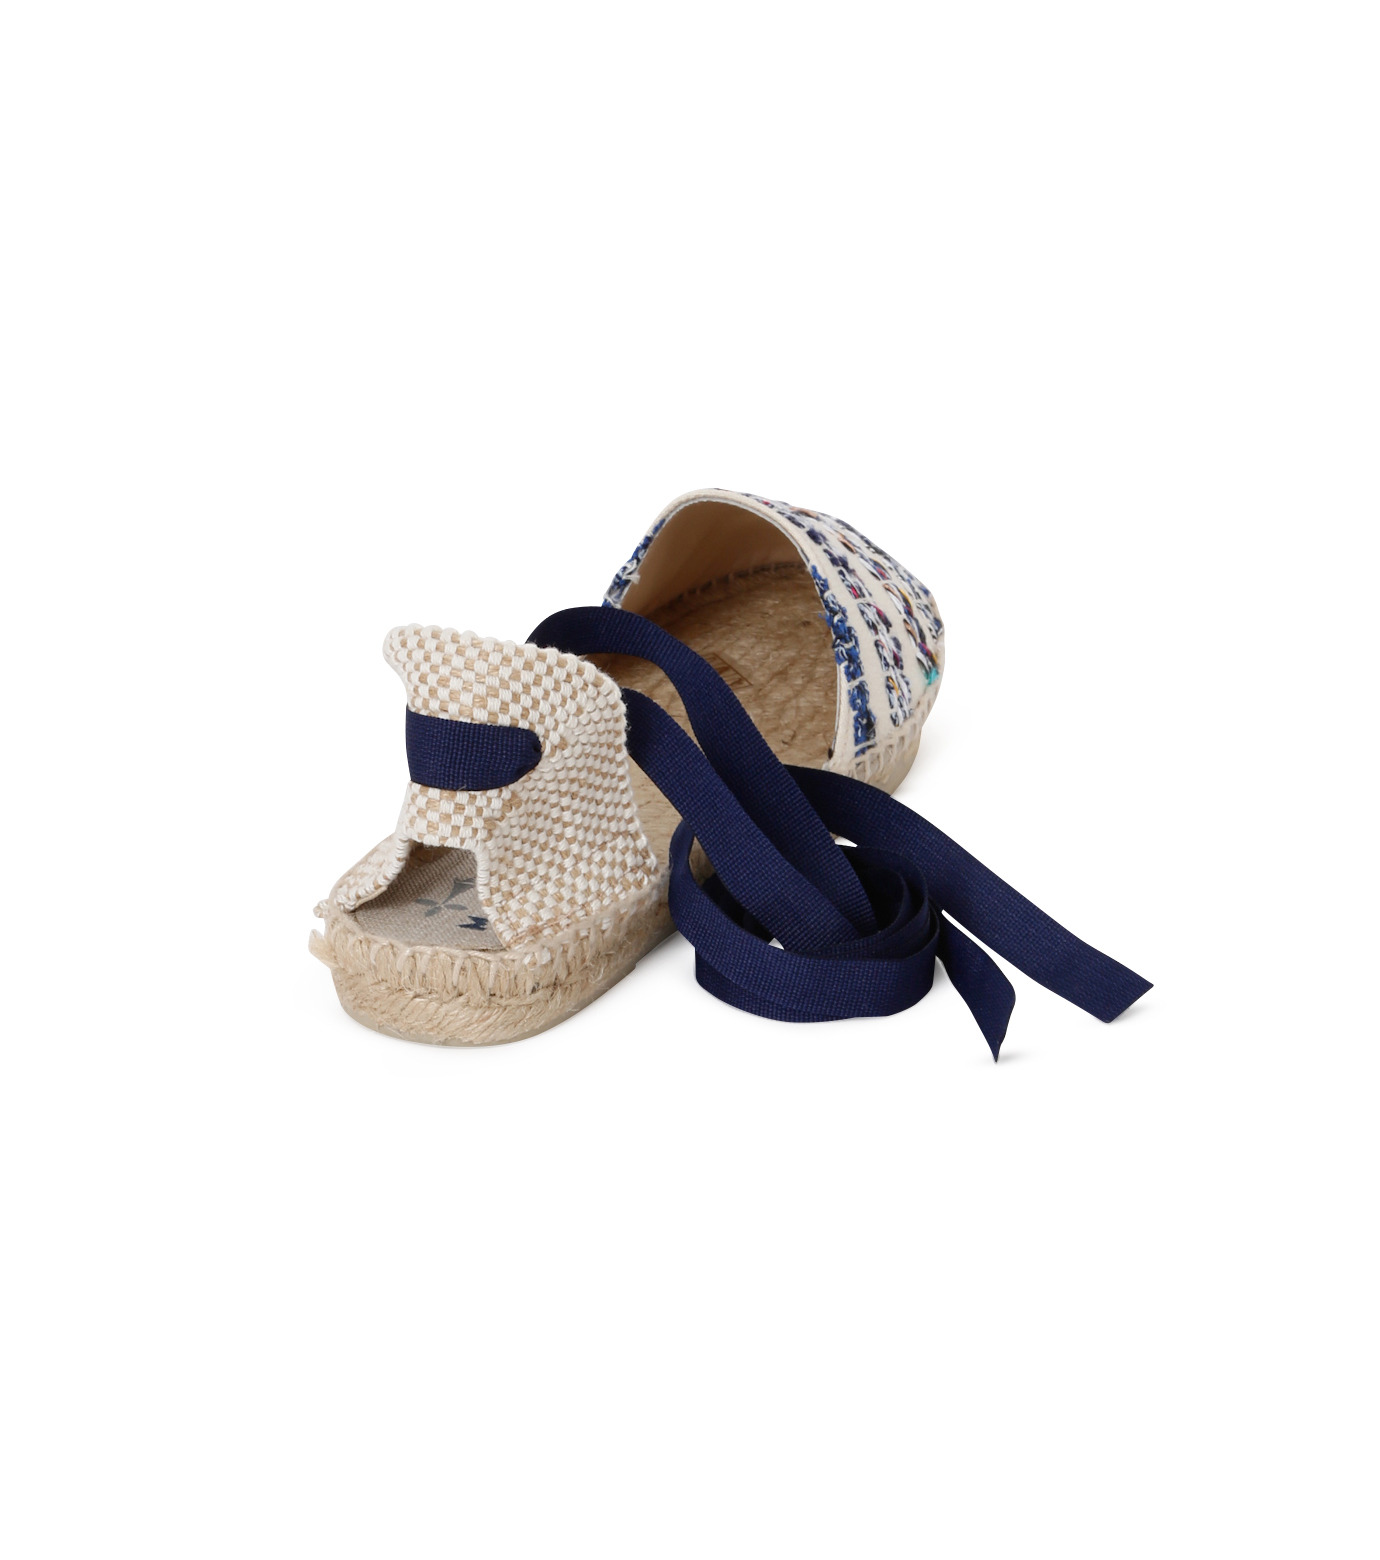 Manebi(マネビ)のtweed stripes ribbon sandals-BLUE(シューズ/shoes)-V-4-7-P-92 拡大詳細画像3